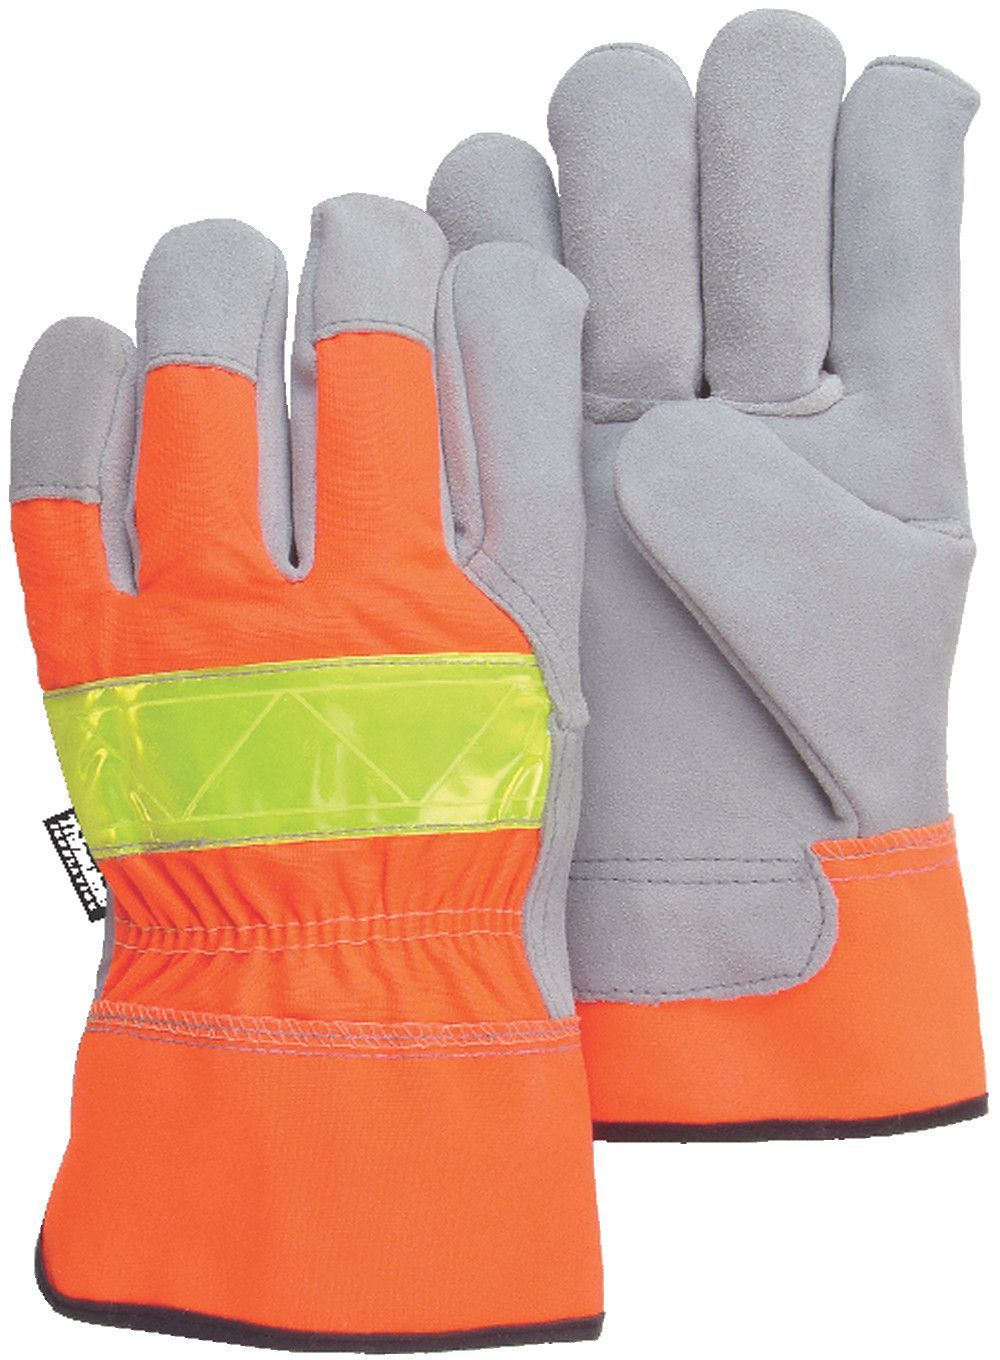 Leather work gloves with thinsulate lining - Majestic 1954t Hi Vis Orange Back Cowhide Leather Palm Work Gloves Safety Cuff Thinsulate Lined